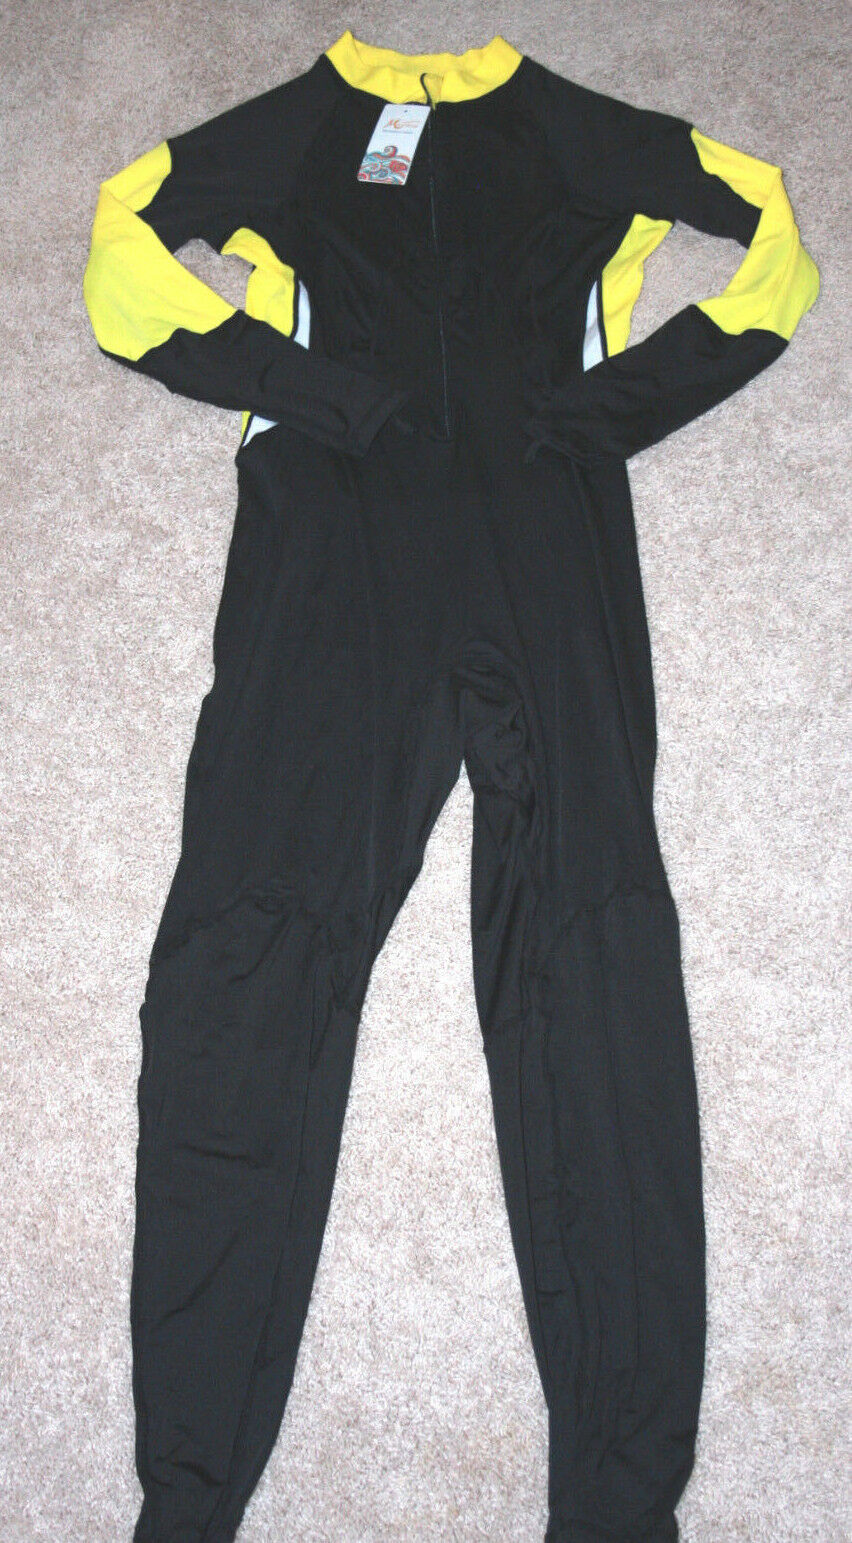 Micosuza Lycra Suit Full Body Rashguard Women's Surf Swim NWT Size XL (M L) a1